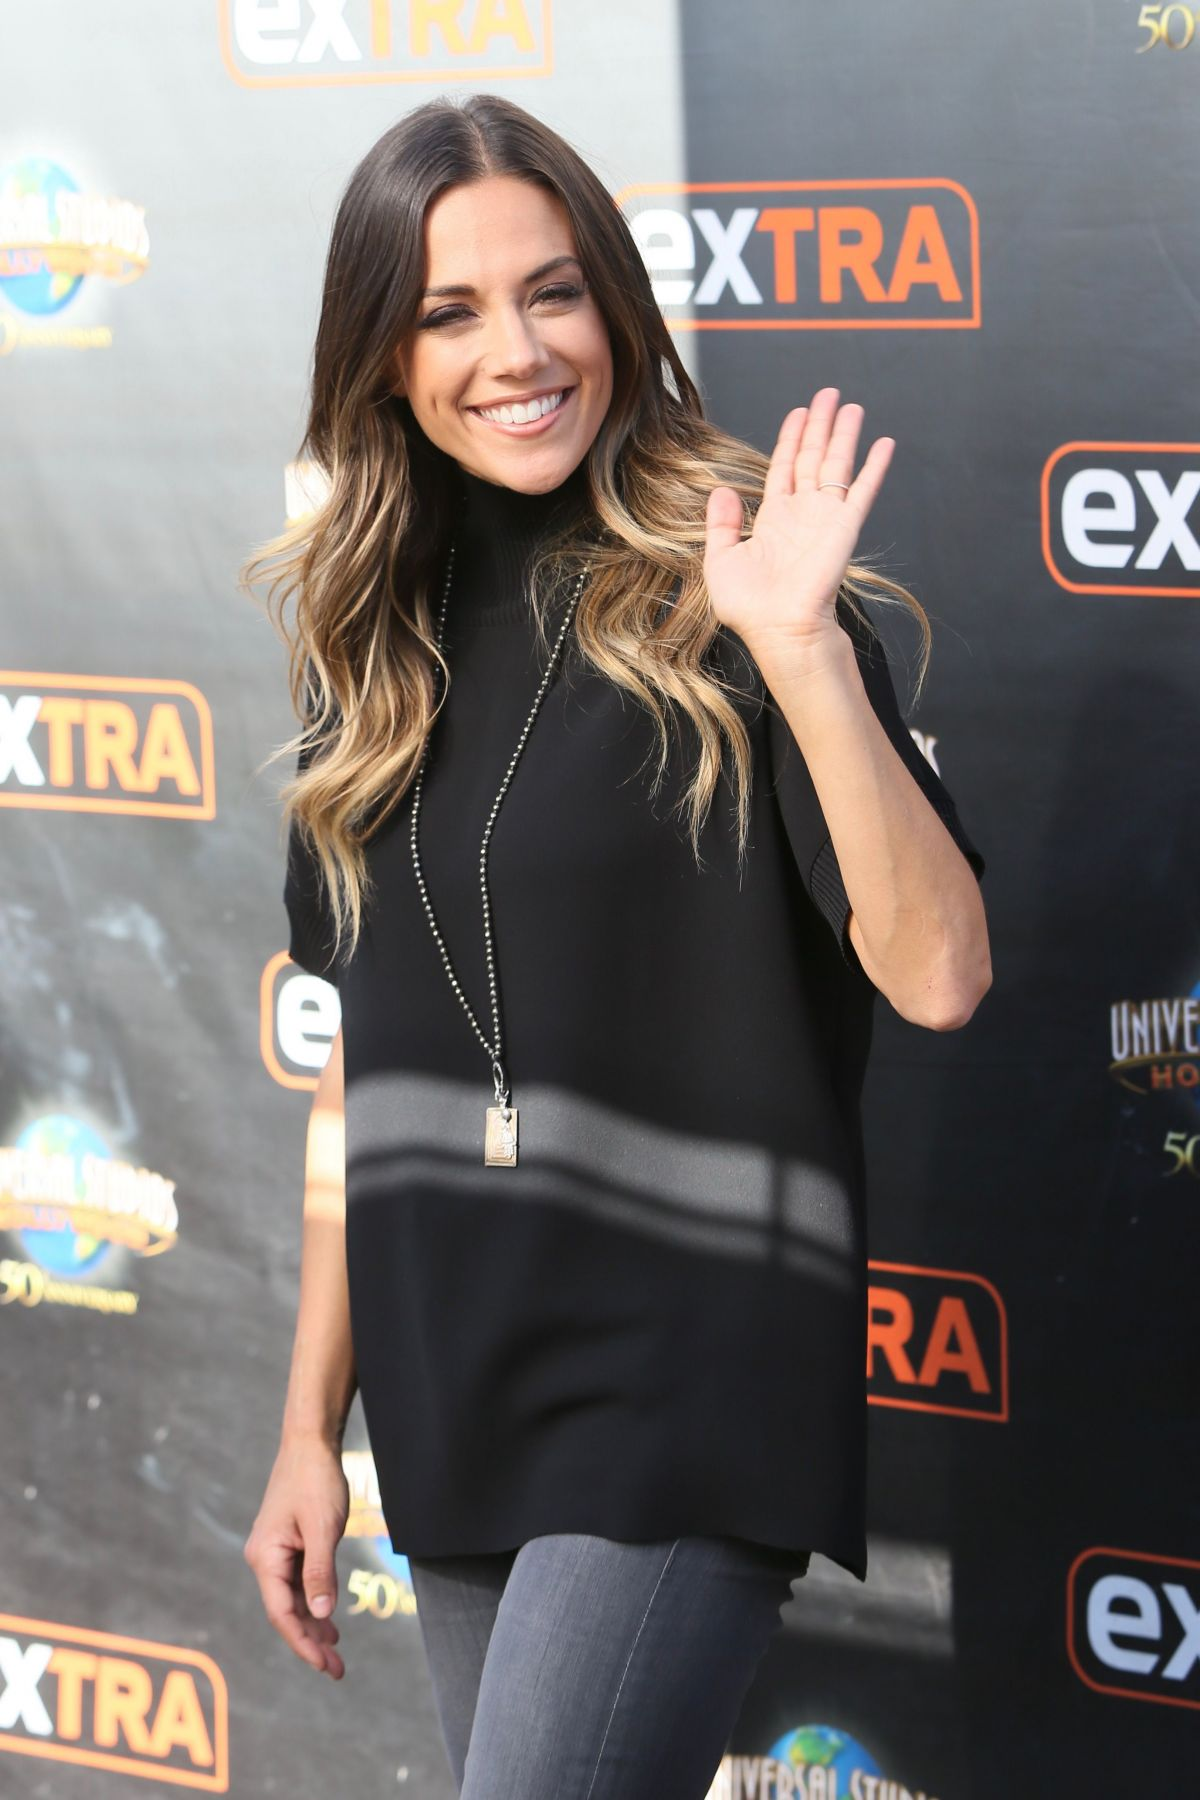 JANA KRAMER on the Set of Extra in Los Angeles 10/21/2016